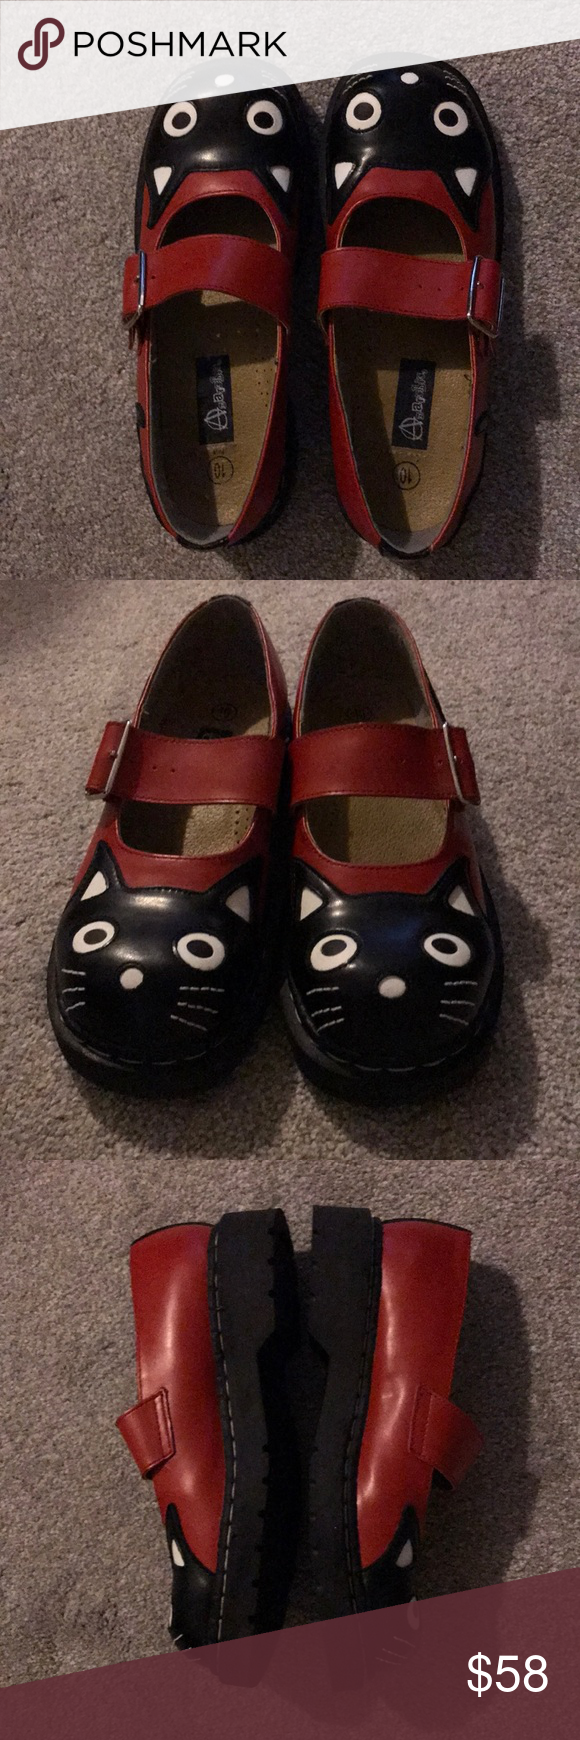 Anarchic Leather Cat Shoes New Red Black Maryjane Cat Shoes Black And Red Leather Mary Janes